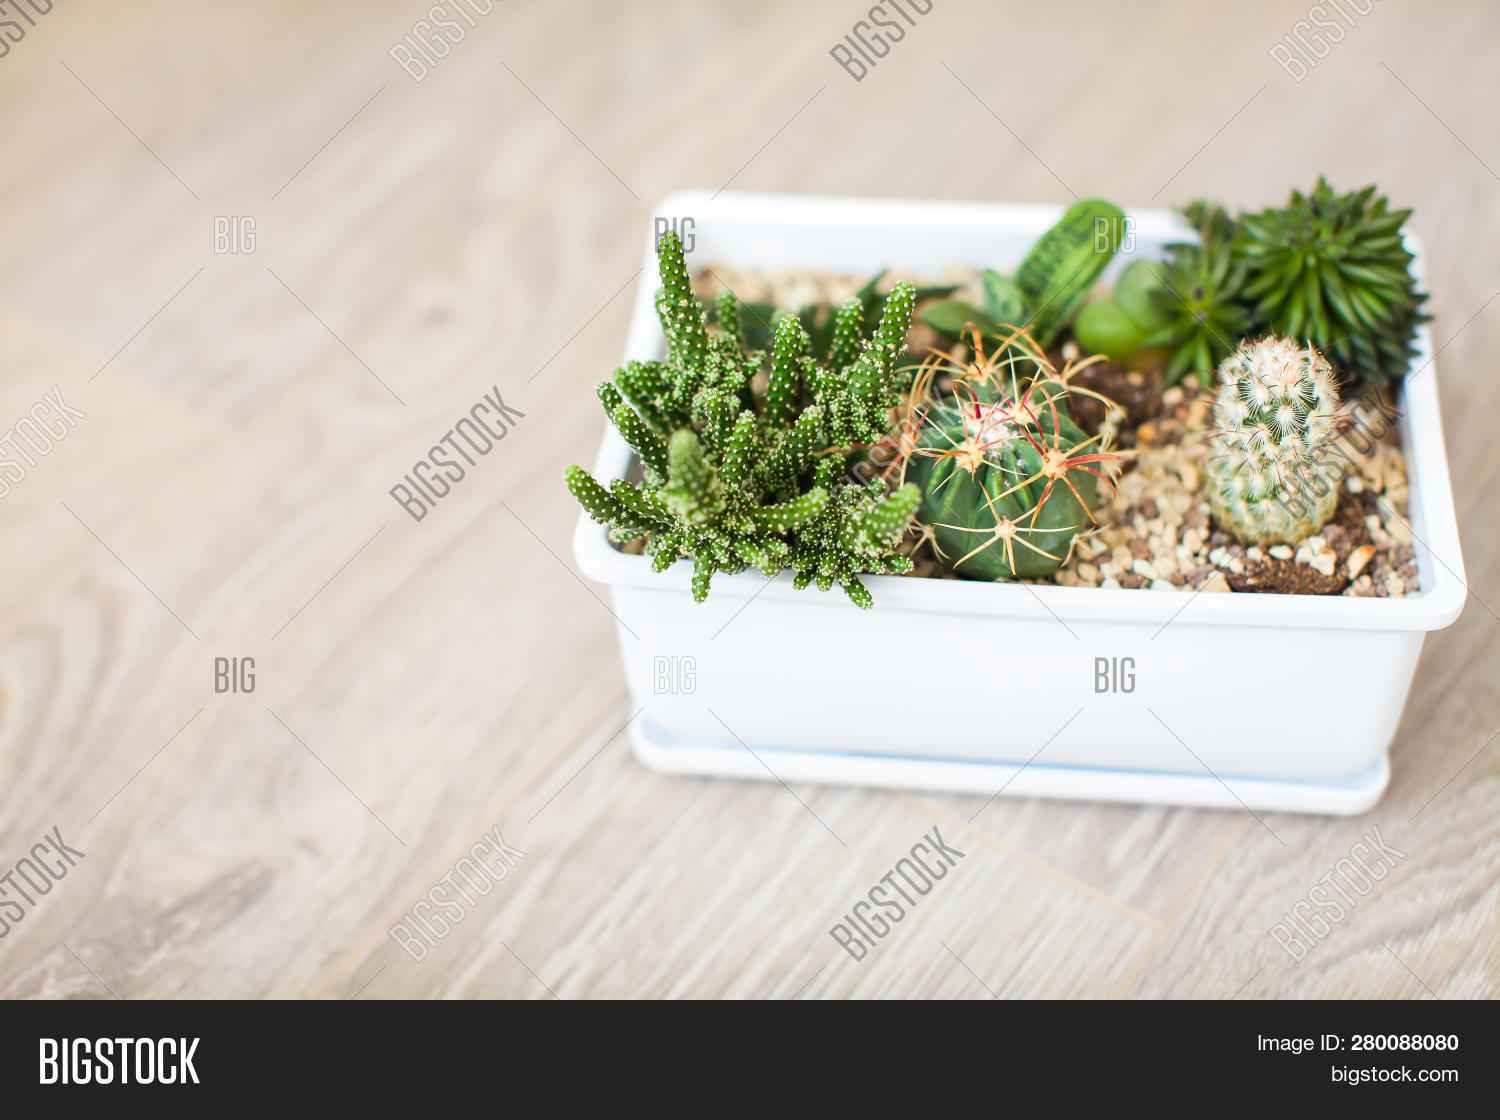 Top View House Plants Image Photo Free Trial Bigstock